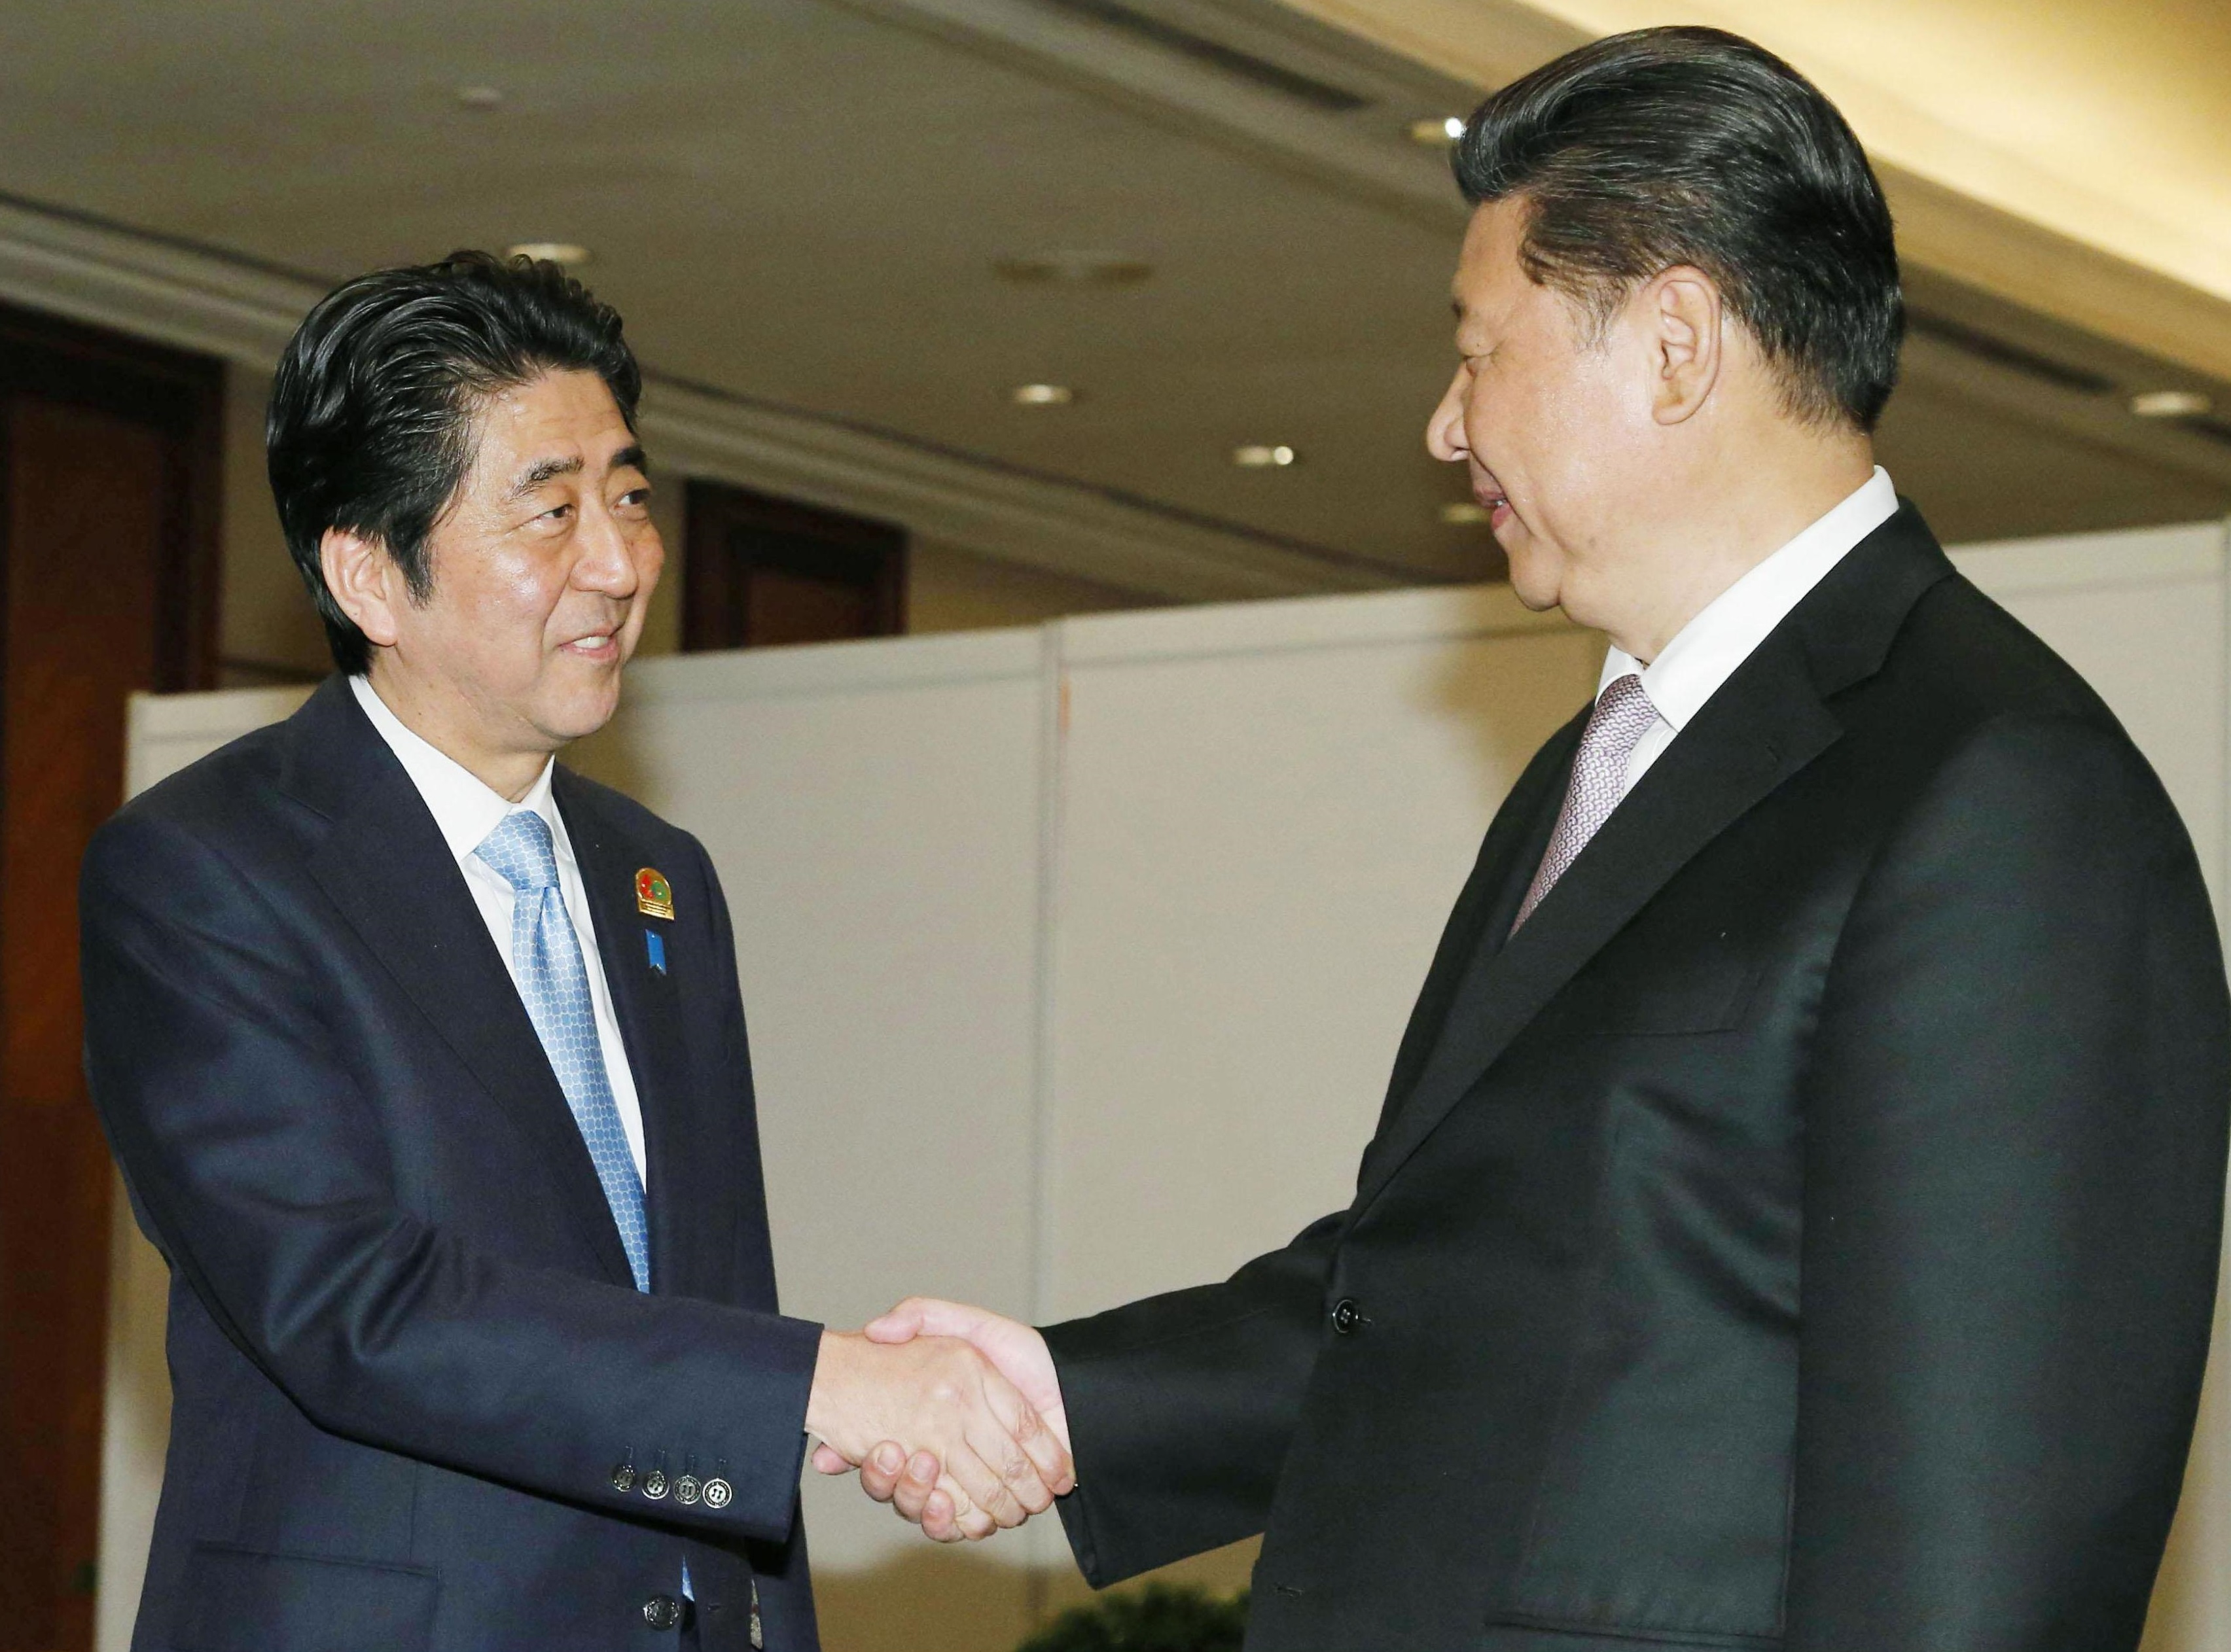 Xi and Abe meet amid tentative thaw in ties | The Japan Times